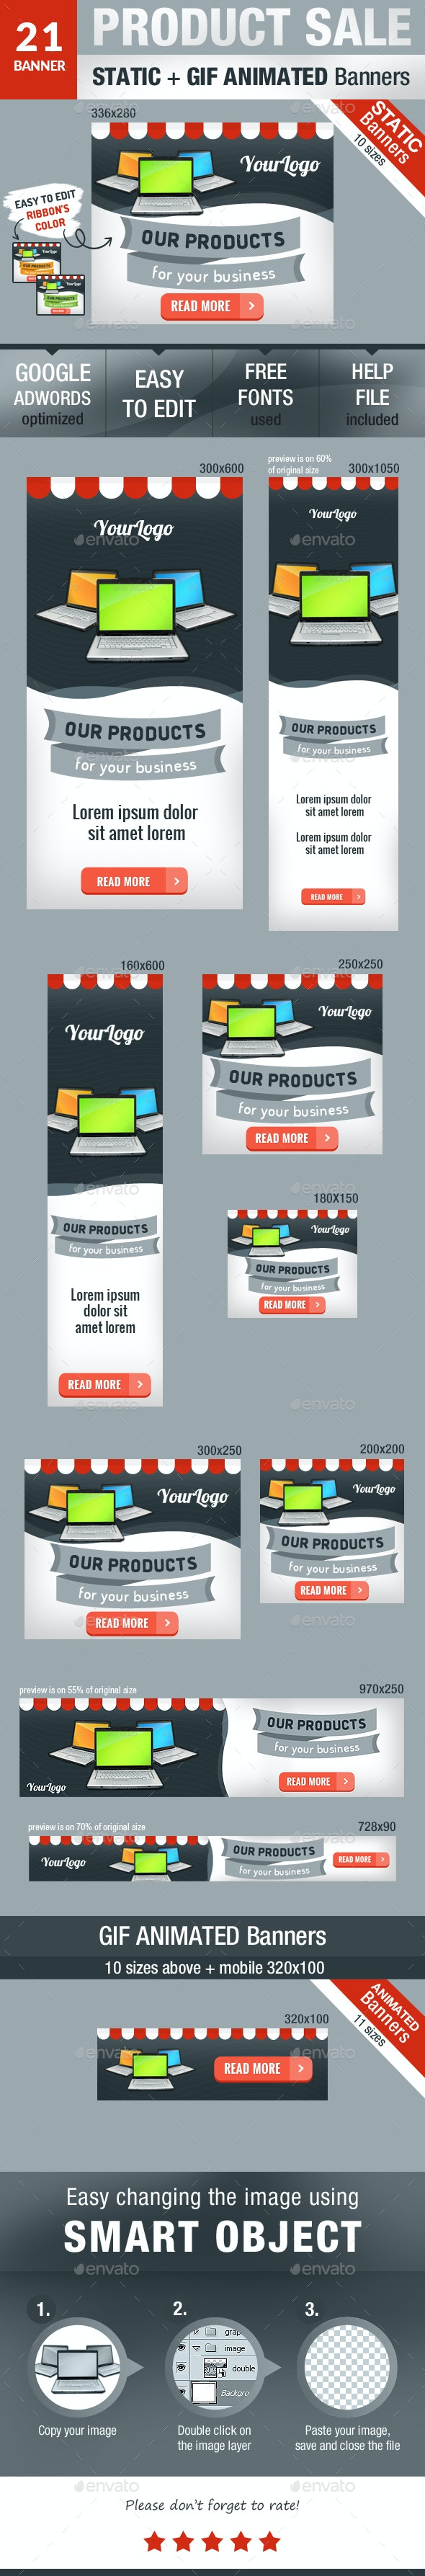 Product Sale Static and GIF Animated Banners - Banners & Ads Web Elements